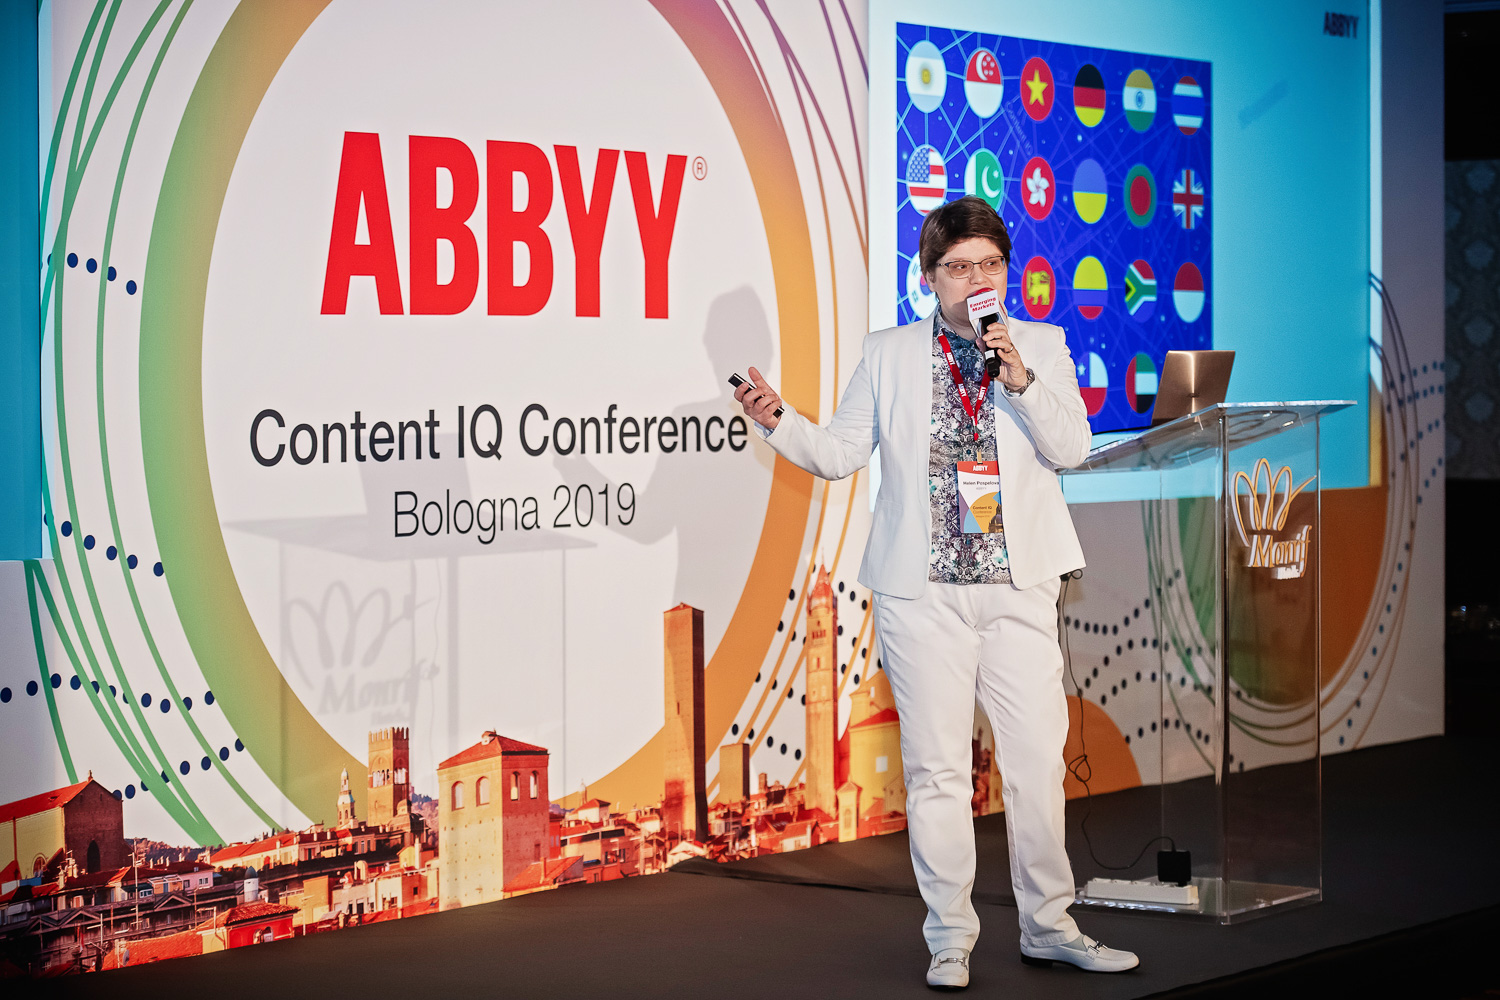 N2NSP_News_ABBYY_AWARD2018_20190813_11